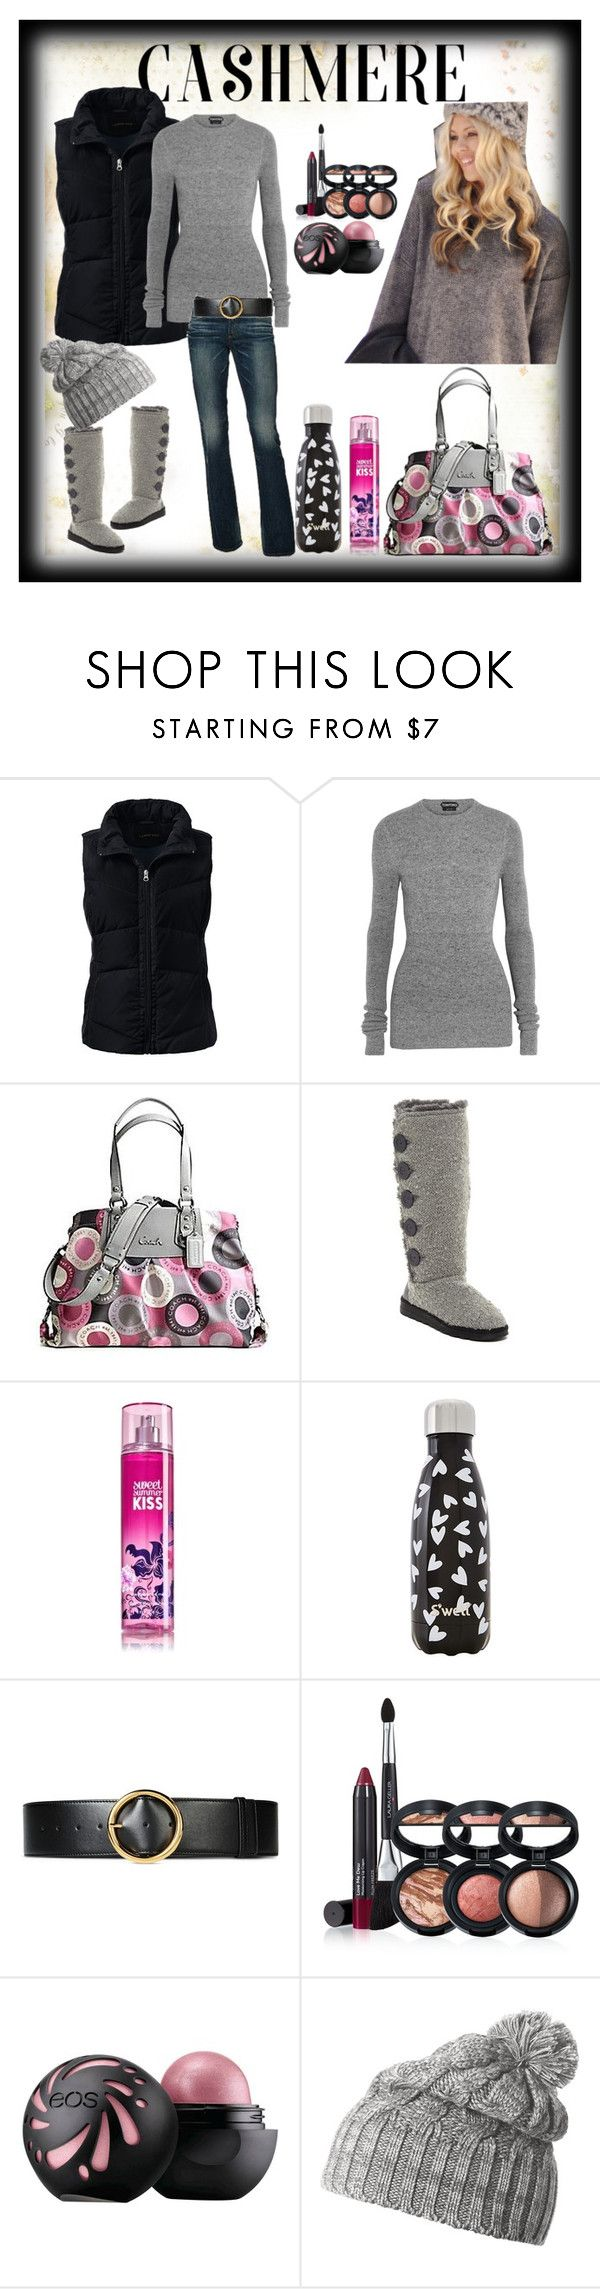 """#Cashmere"" by willfongdanielle ❤ liked on Polyvore featuring Lands' End, Tom Ford, Coach, Muk Luks, AG Adriano Goldschmied, S'well, STELLA McCARTNEY, Laura Geller and Helly Hansen"